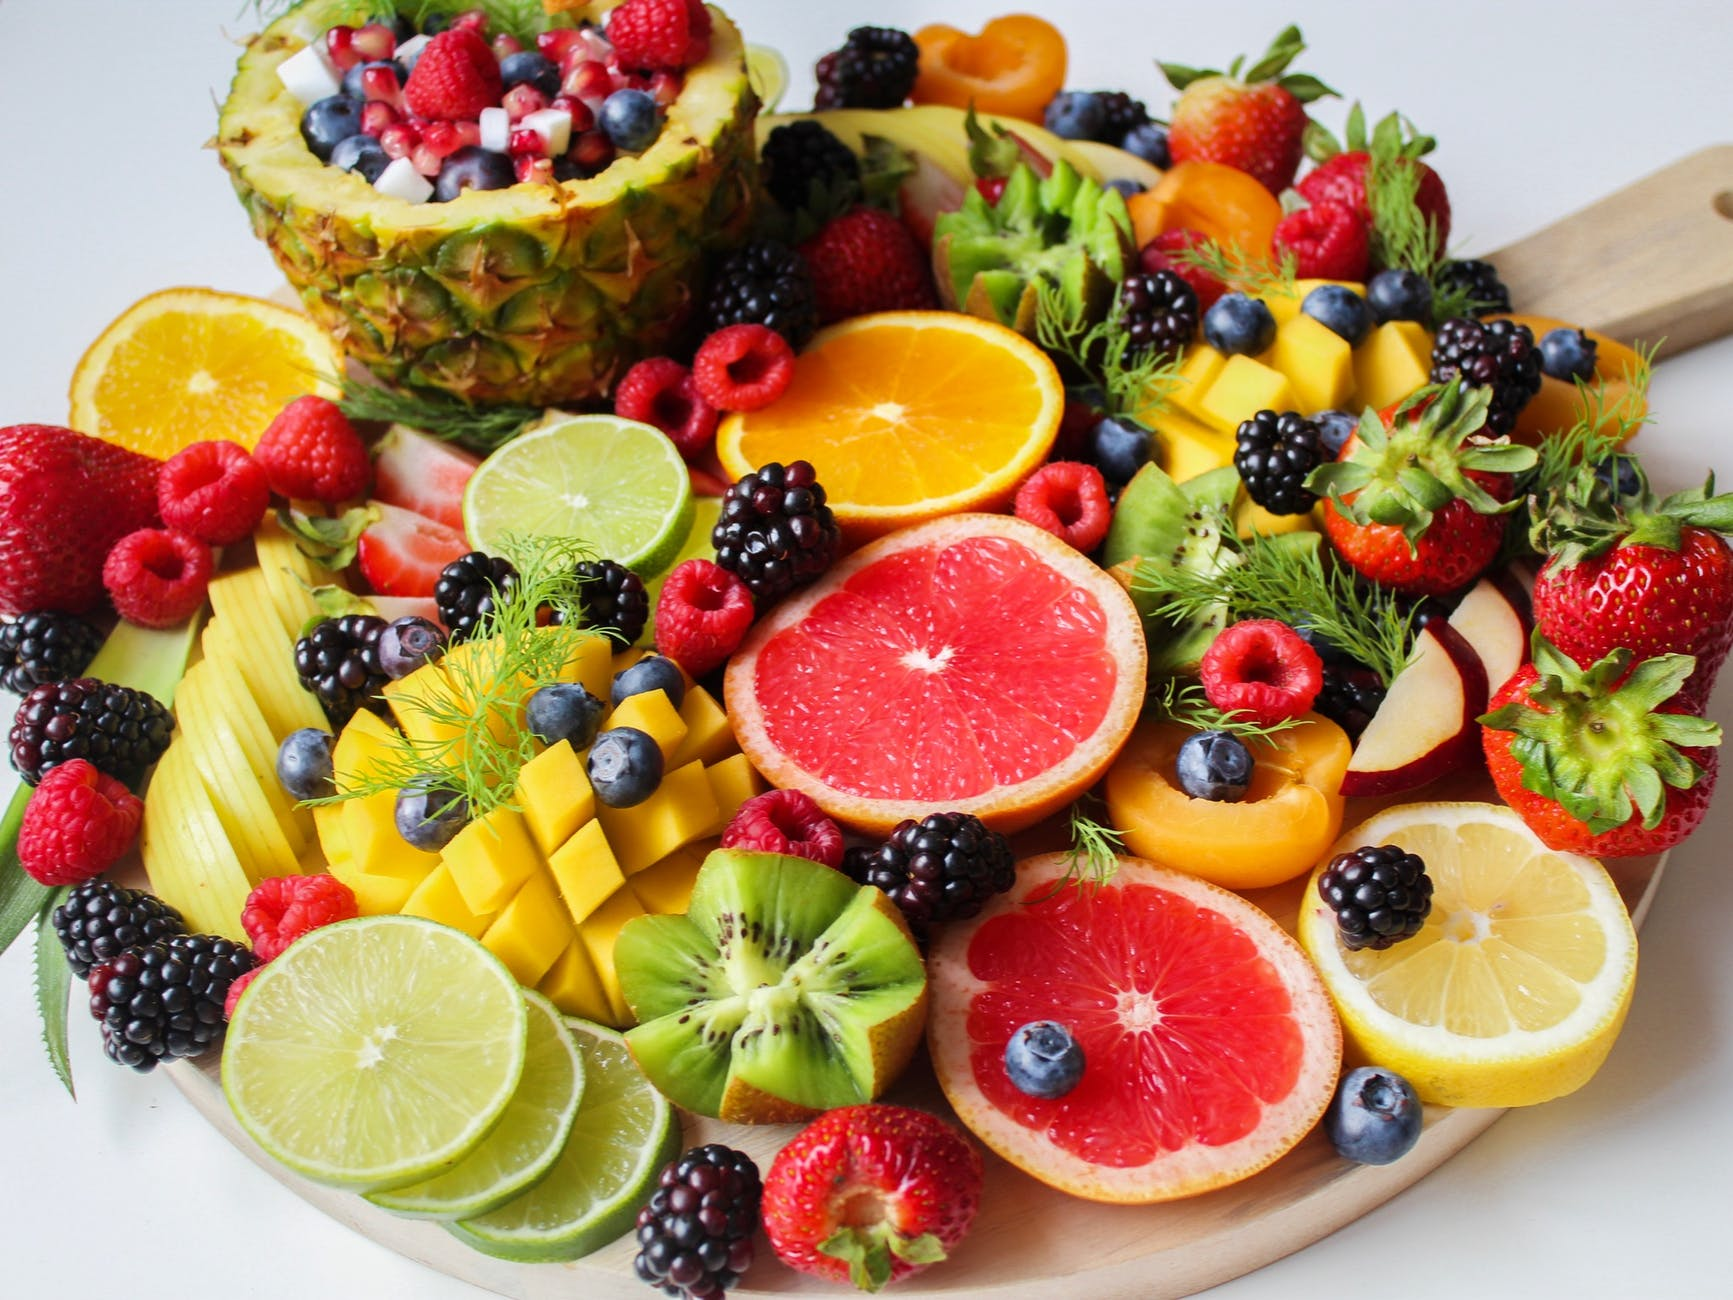 Photo of a wooden pan with assorted fruits